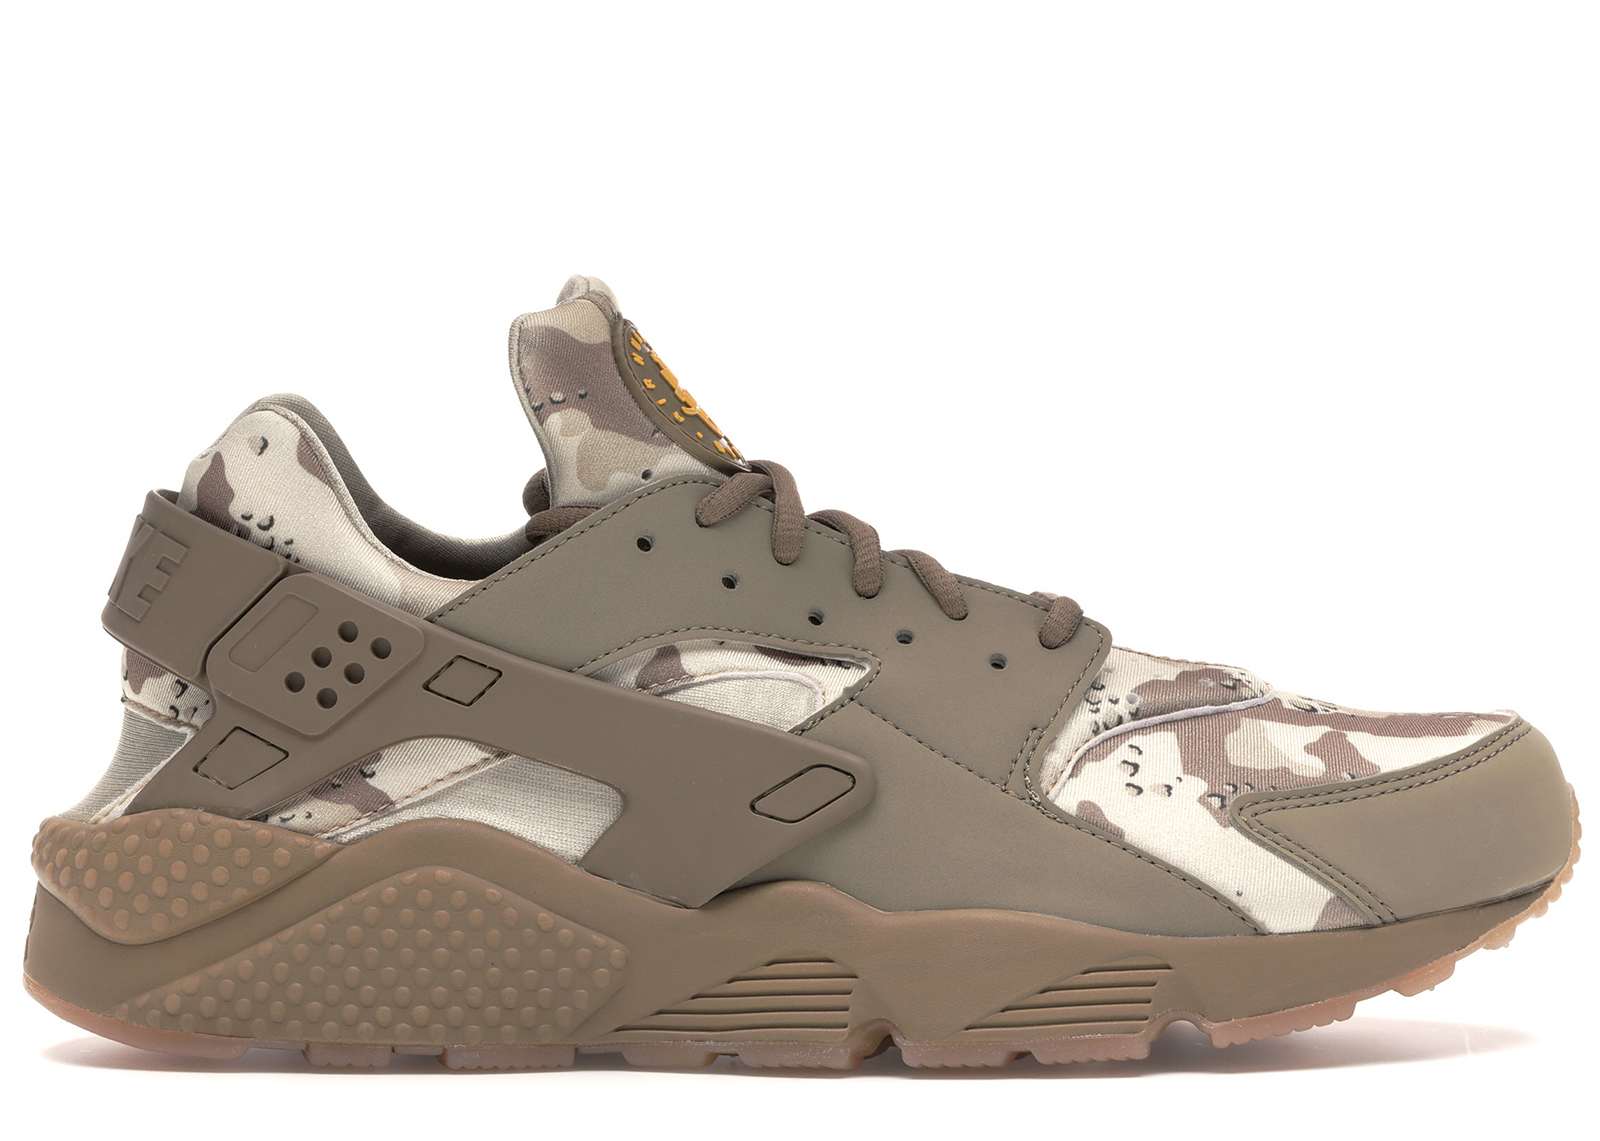 Nike Air Huarache Run Desert Camo